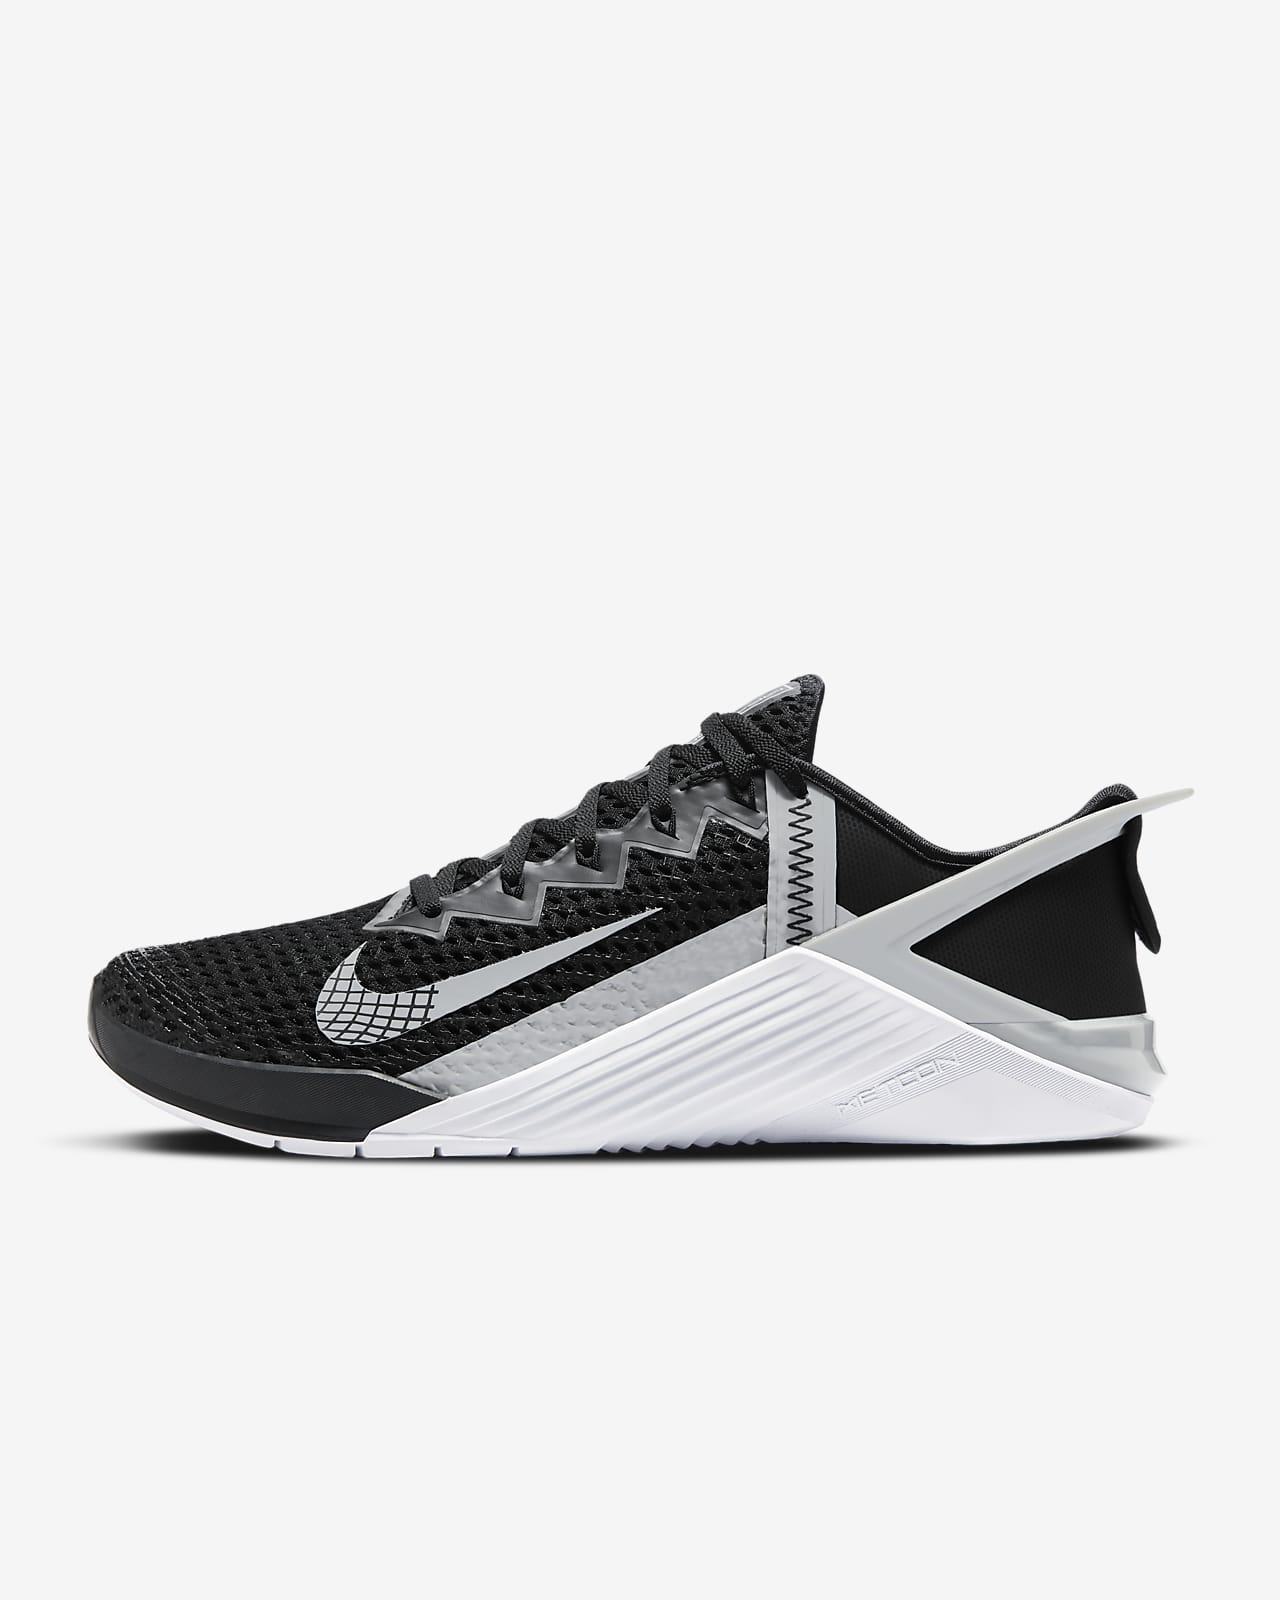 Nike Metcon 6 FlyEase Men's Training Shoe